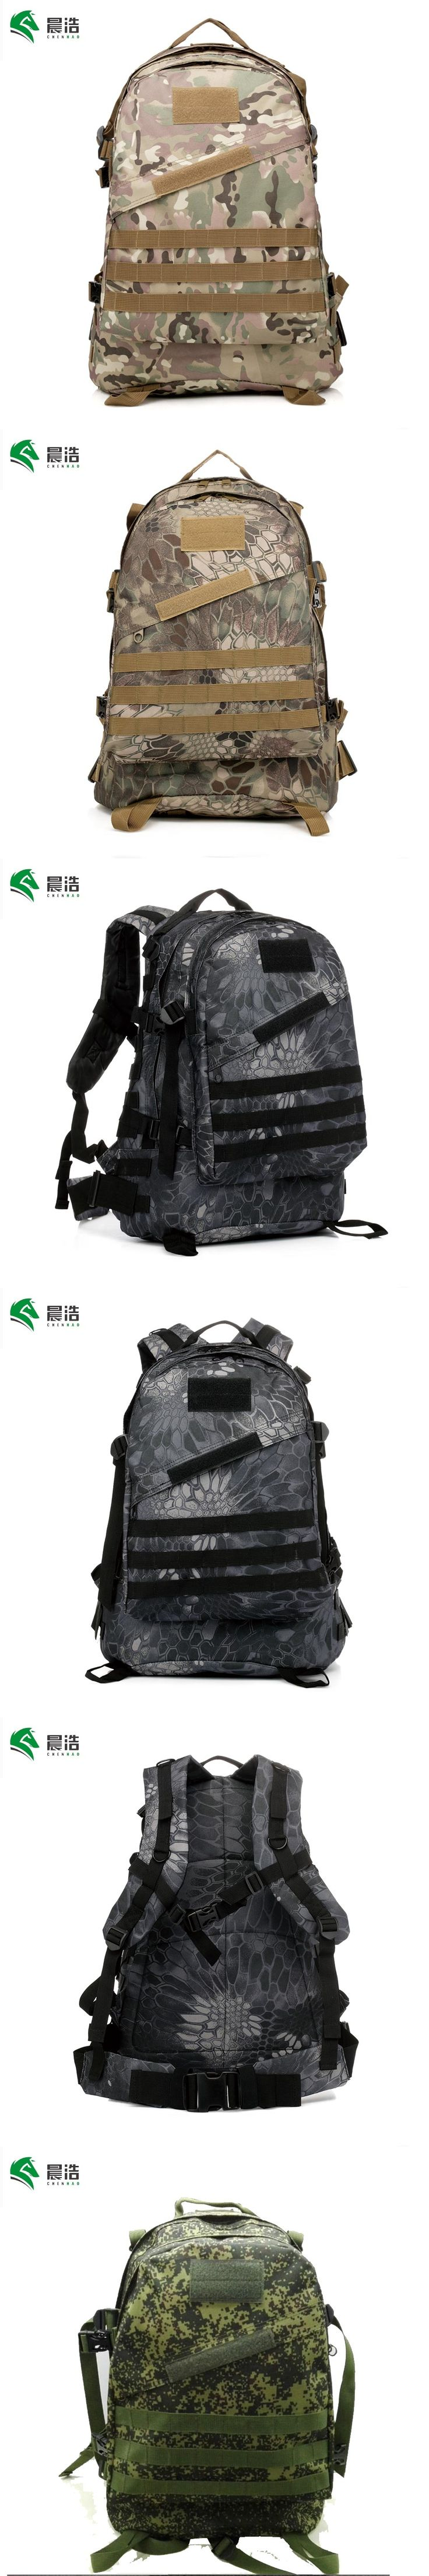 CHENHAO 3D Outdoor Military Tactical Backpack 45L Climbing Mountaineering Pack MOLLE System Travel Camping Hiking Trekking bag